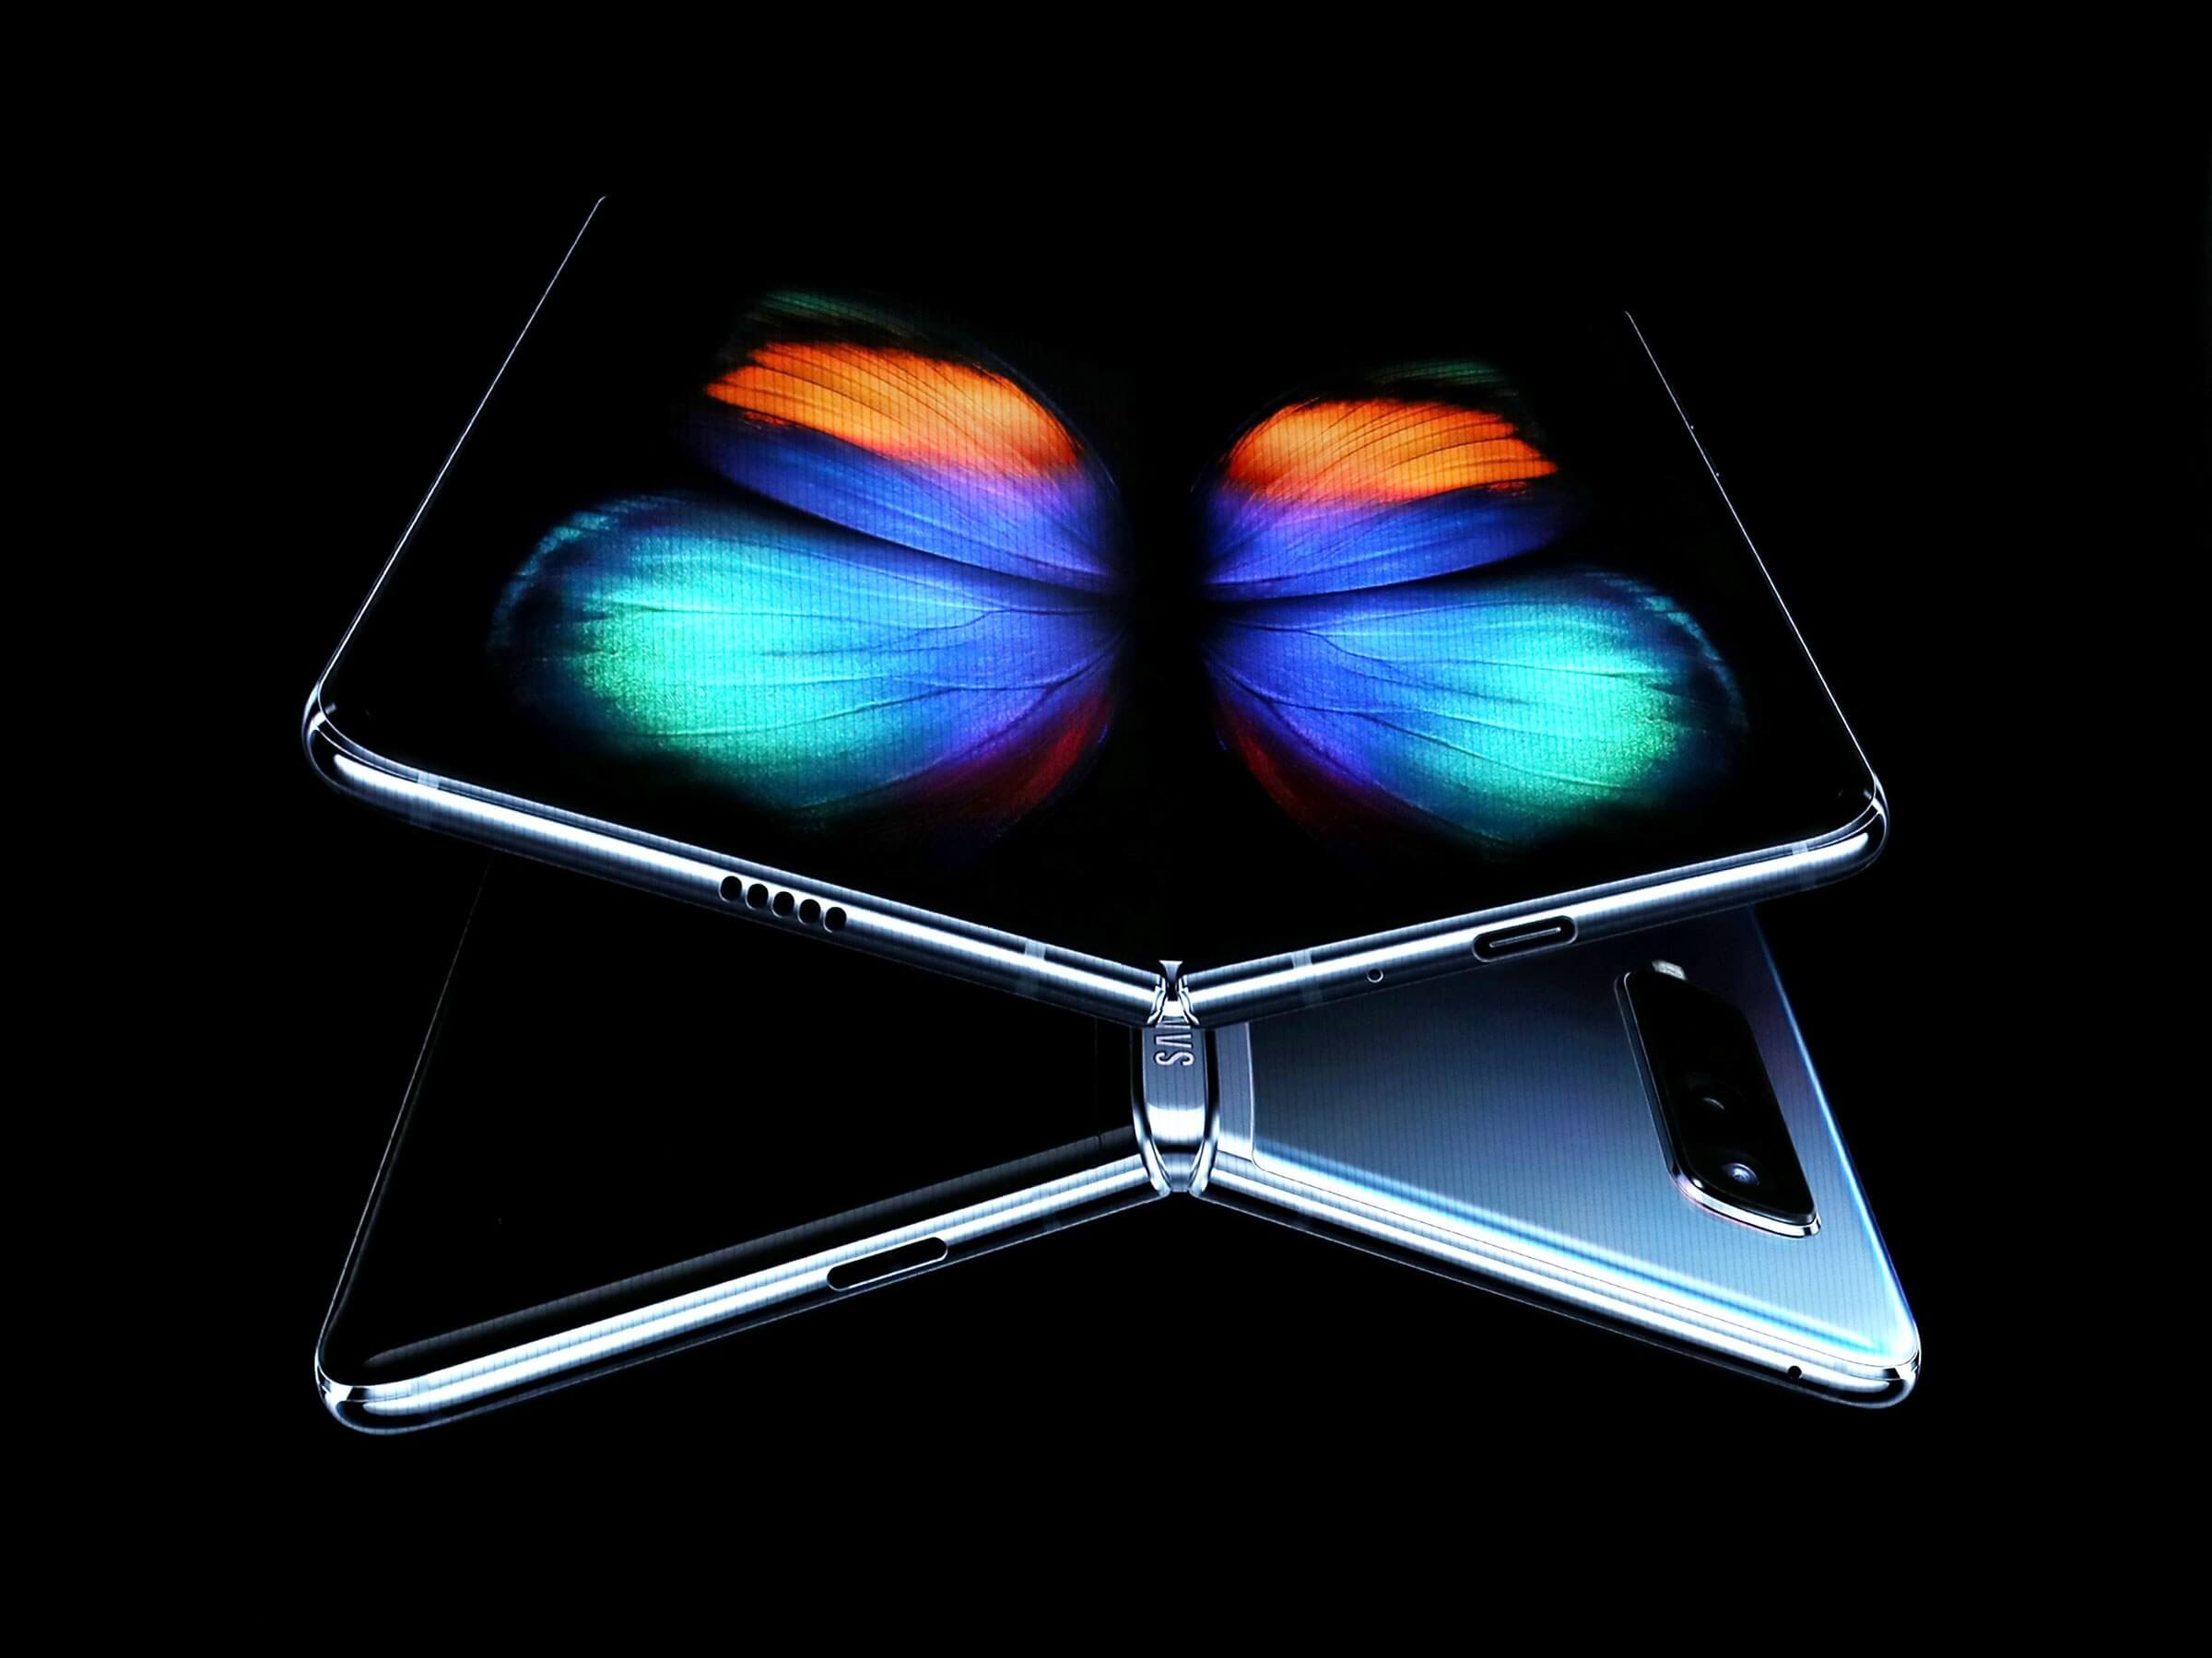 Samsung Robots Subjected the Galaxy Fold to 200,000 Folds